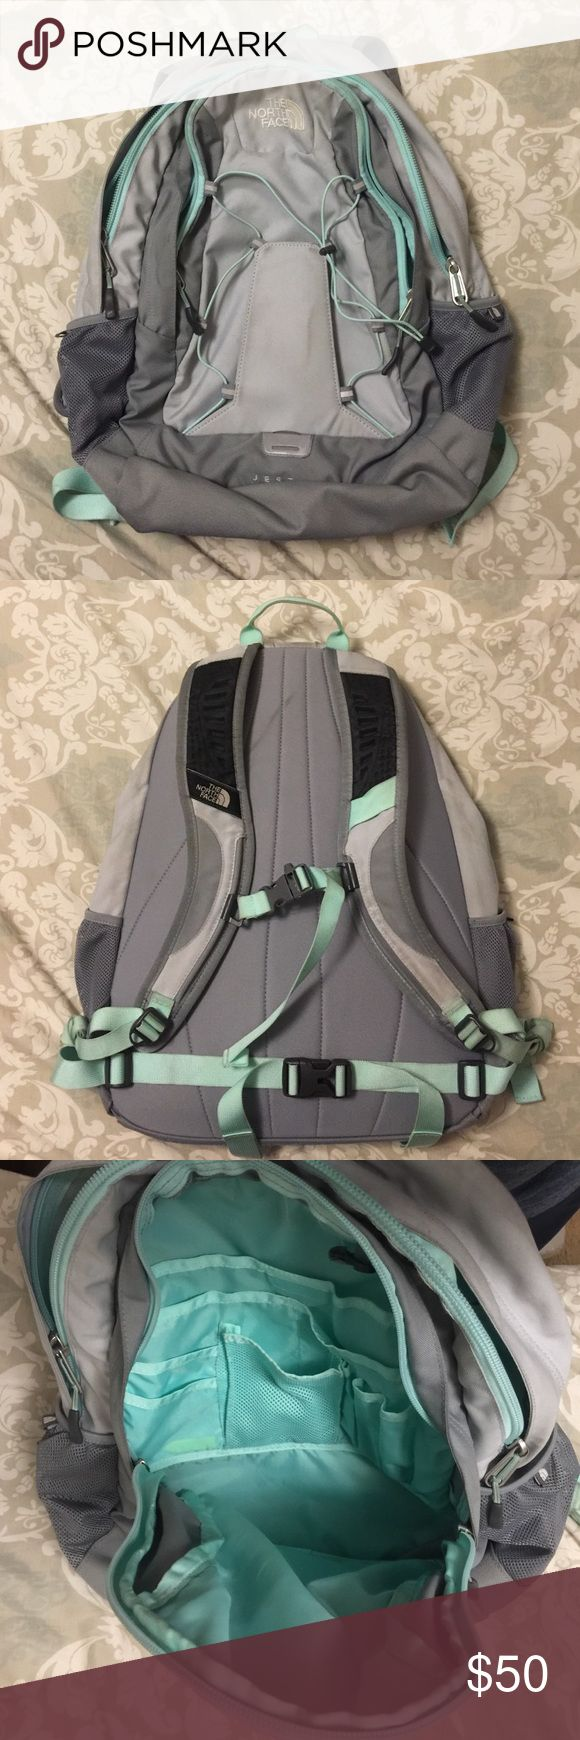 The North Face Jester Book Bag Bag is several shades of gray and a mint green/blue with white logo. Only had it for one year and used only for school so it is still in great condition! Normal dirt from wear, but can definitely be thrown in the wash to freshen it up. (Selling because I bought a new color) Offers with the offer button are welcome! No trades please :) North Face Bags Backpacks